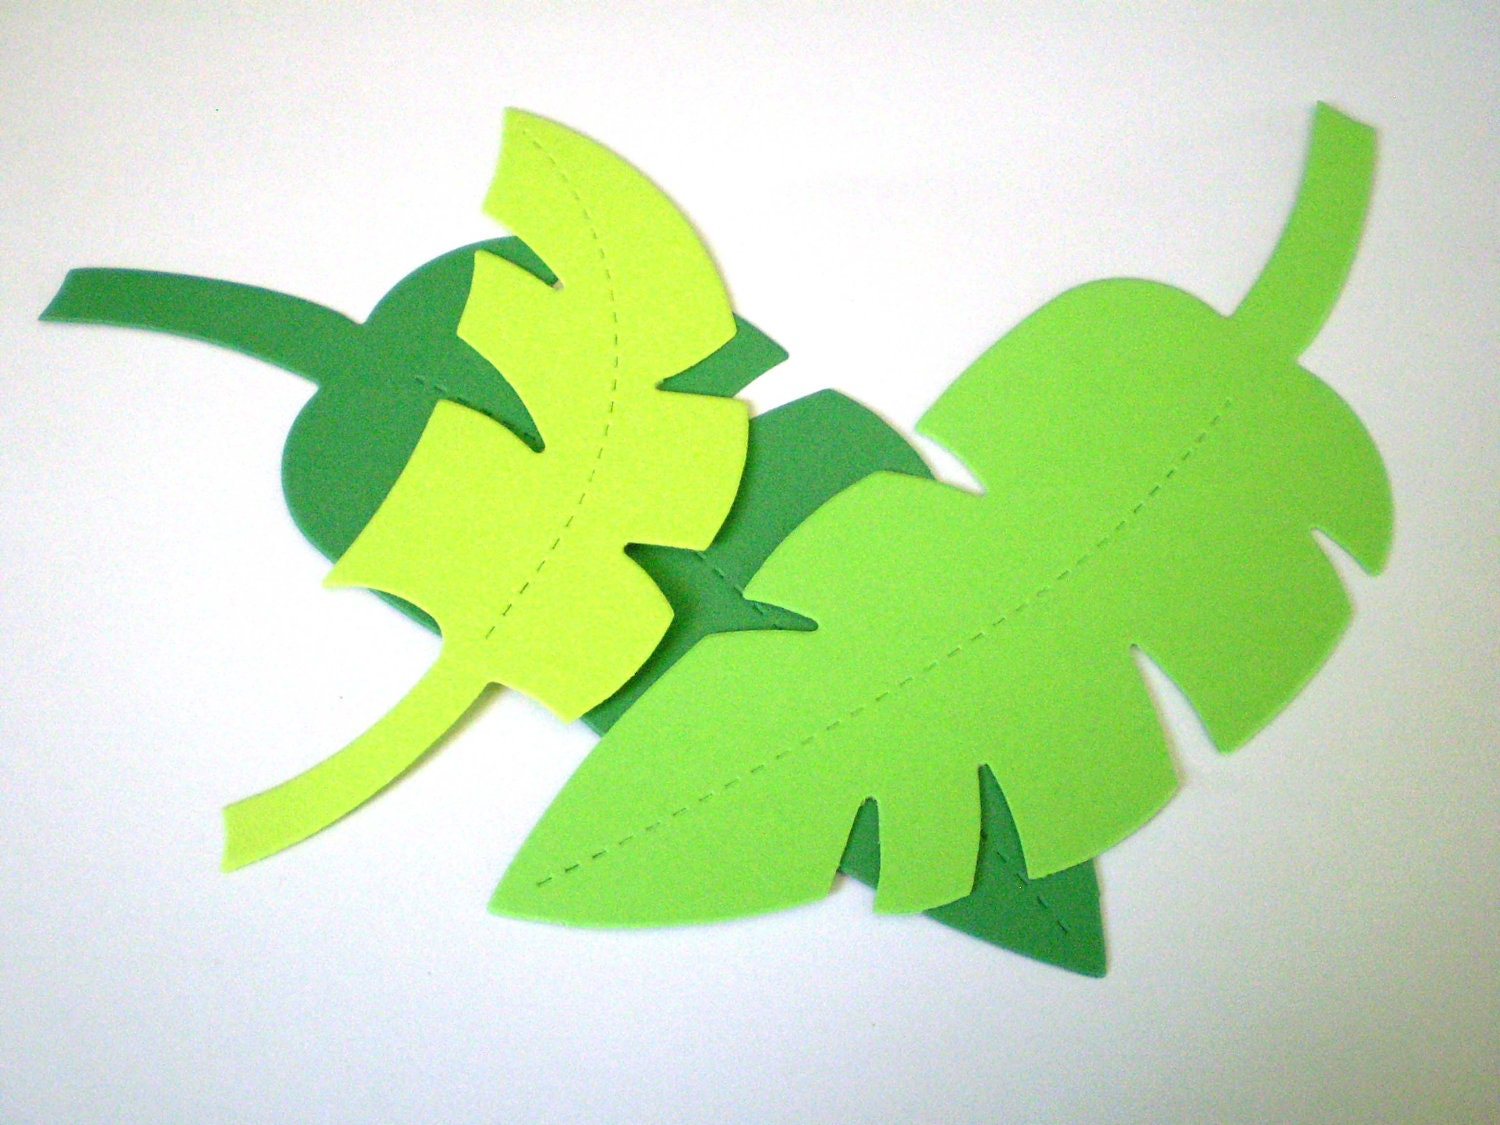 Gallery For gt Jungle Leaf Stencil